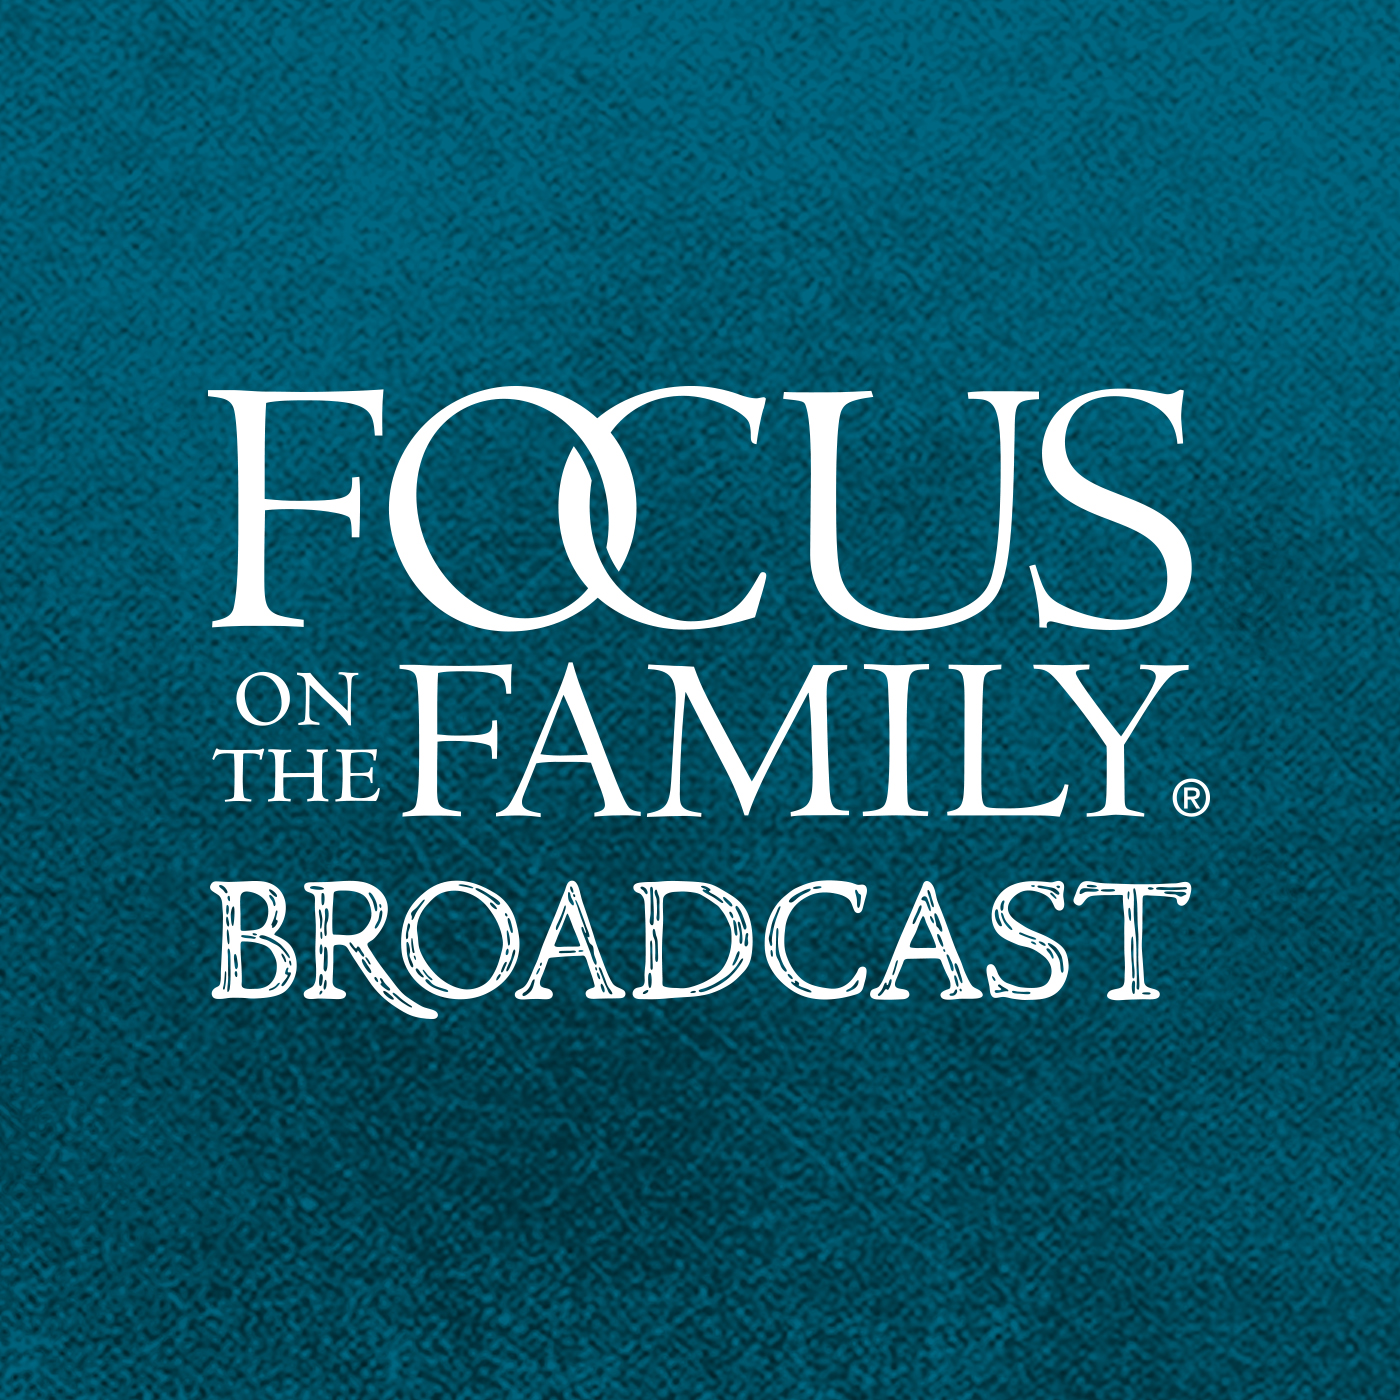 The Hookup Marriage On And Focus Family isnt your odds